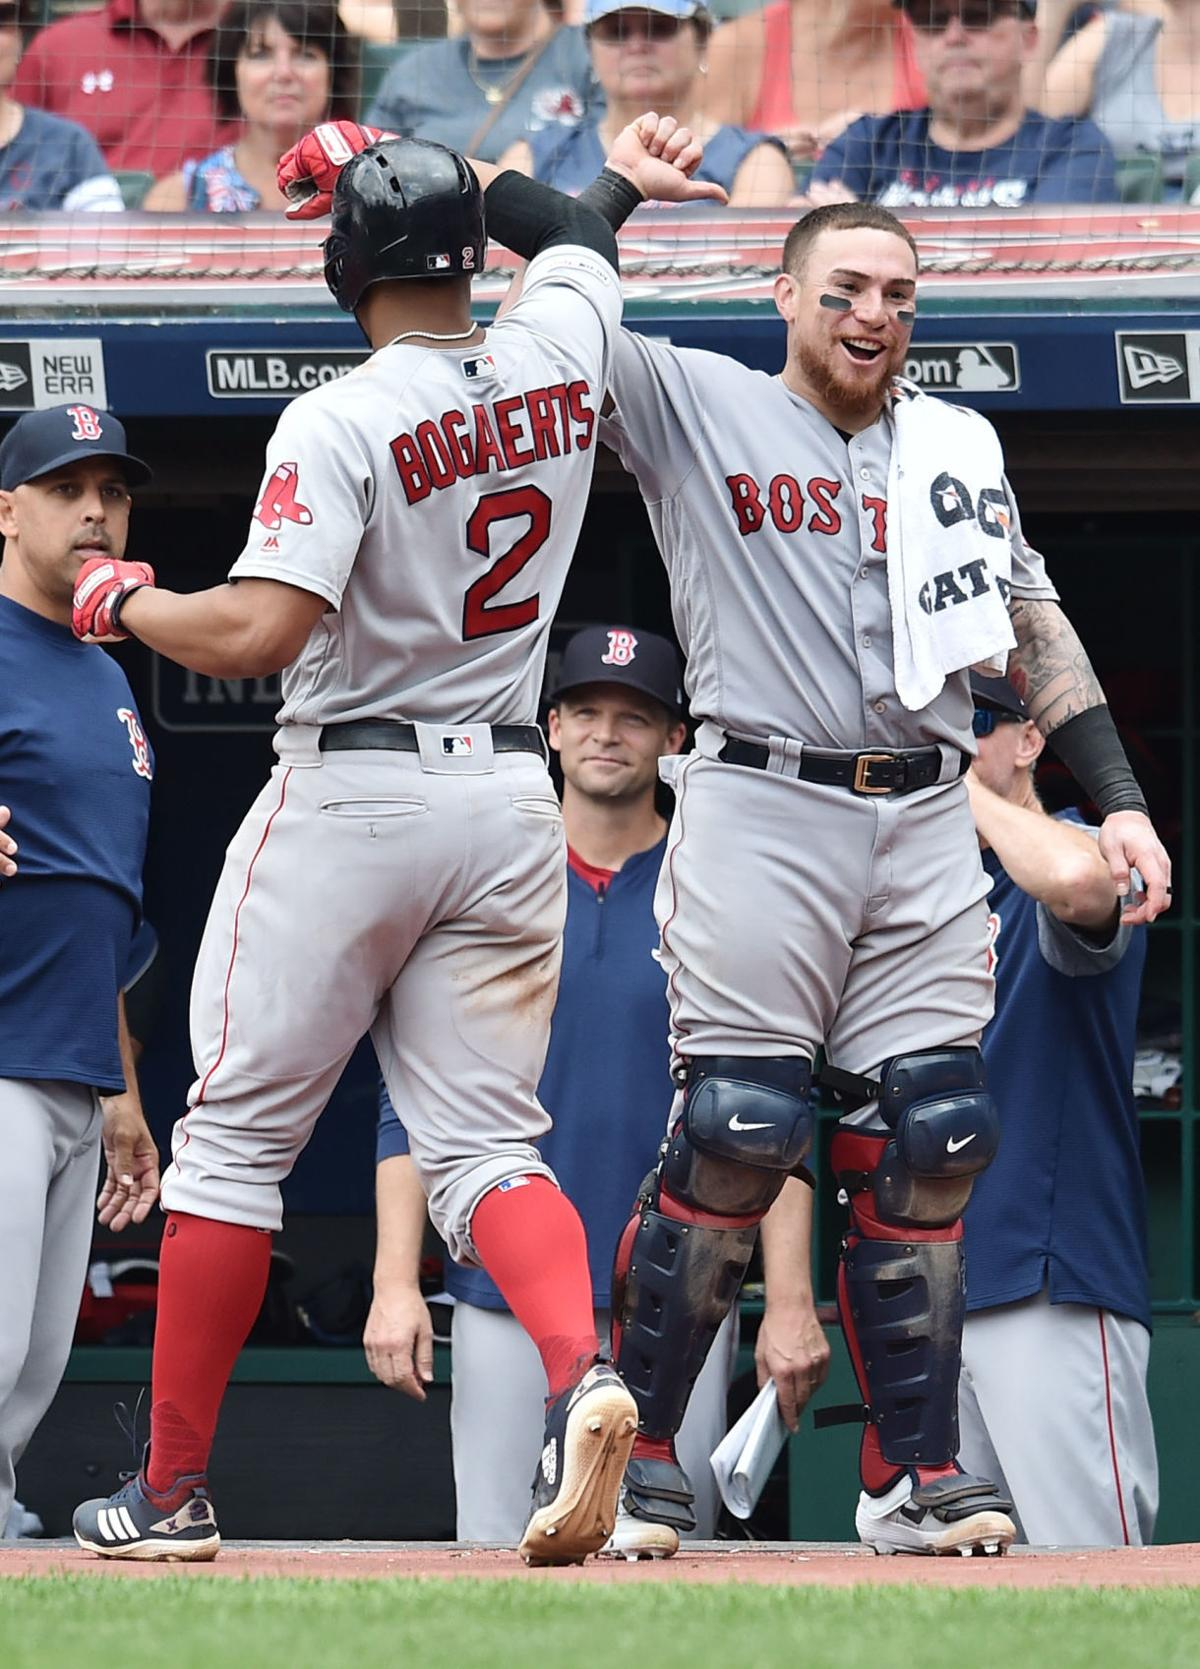 MLB: Boston Red Sox at Cleveland Indians